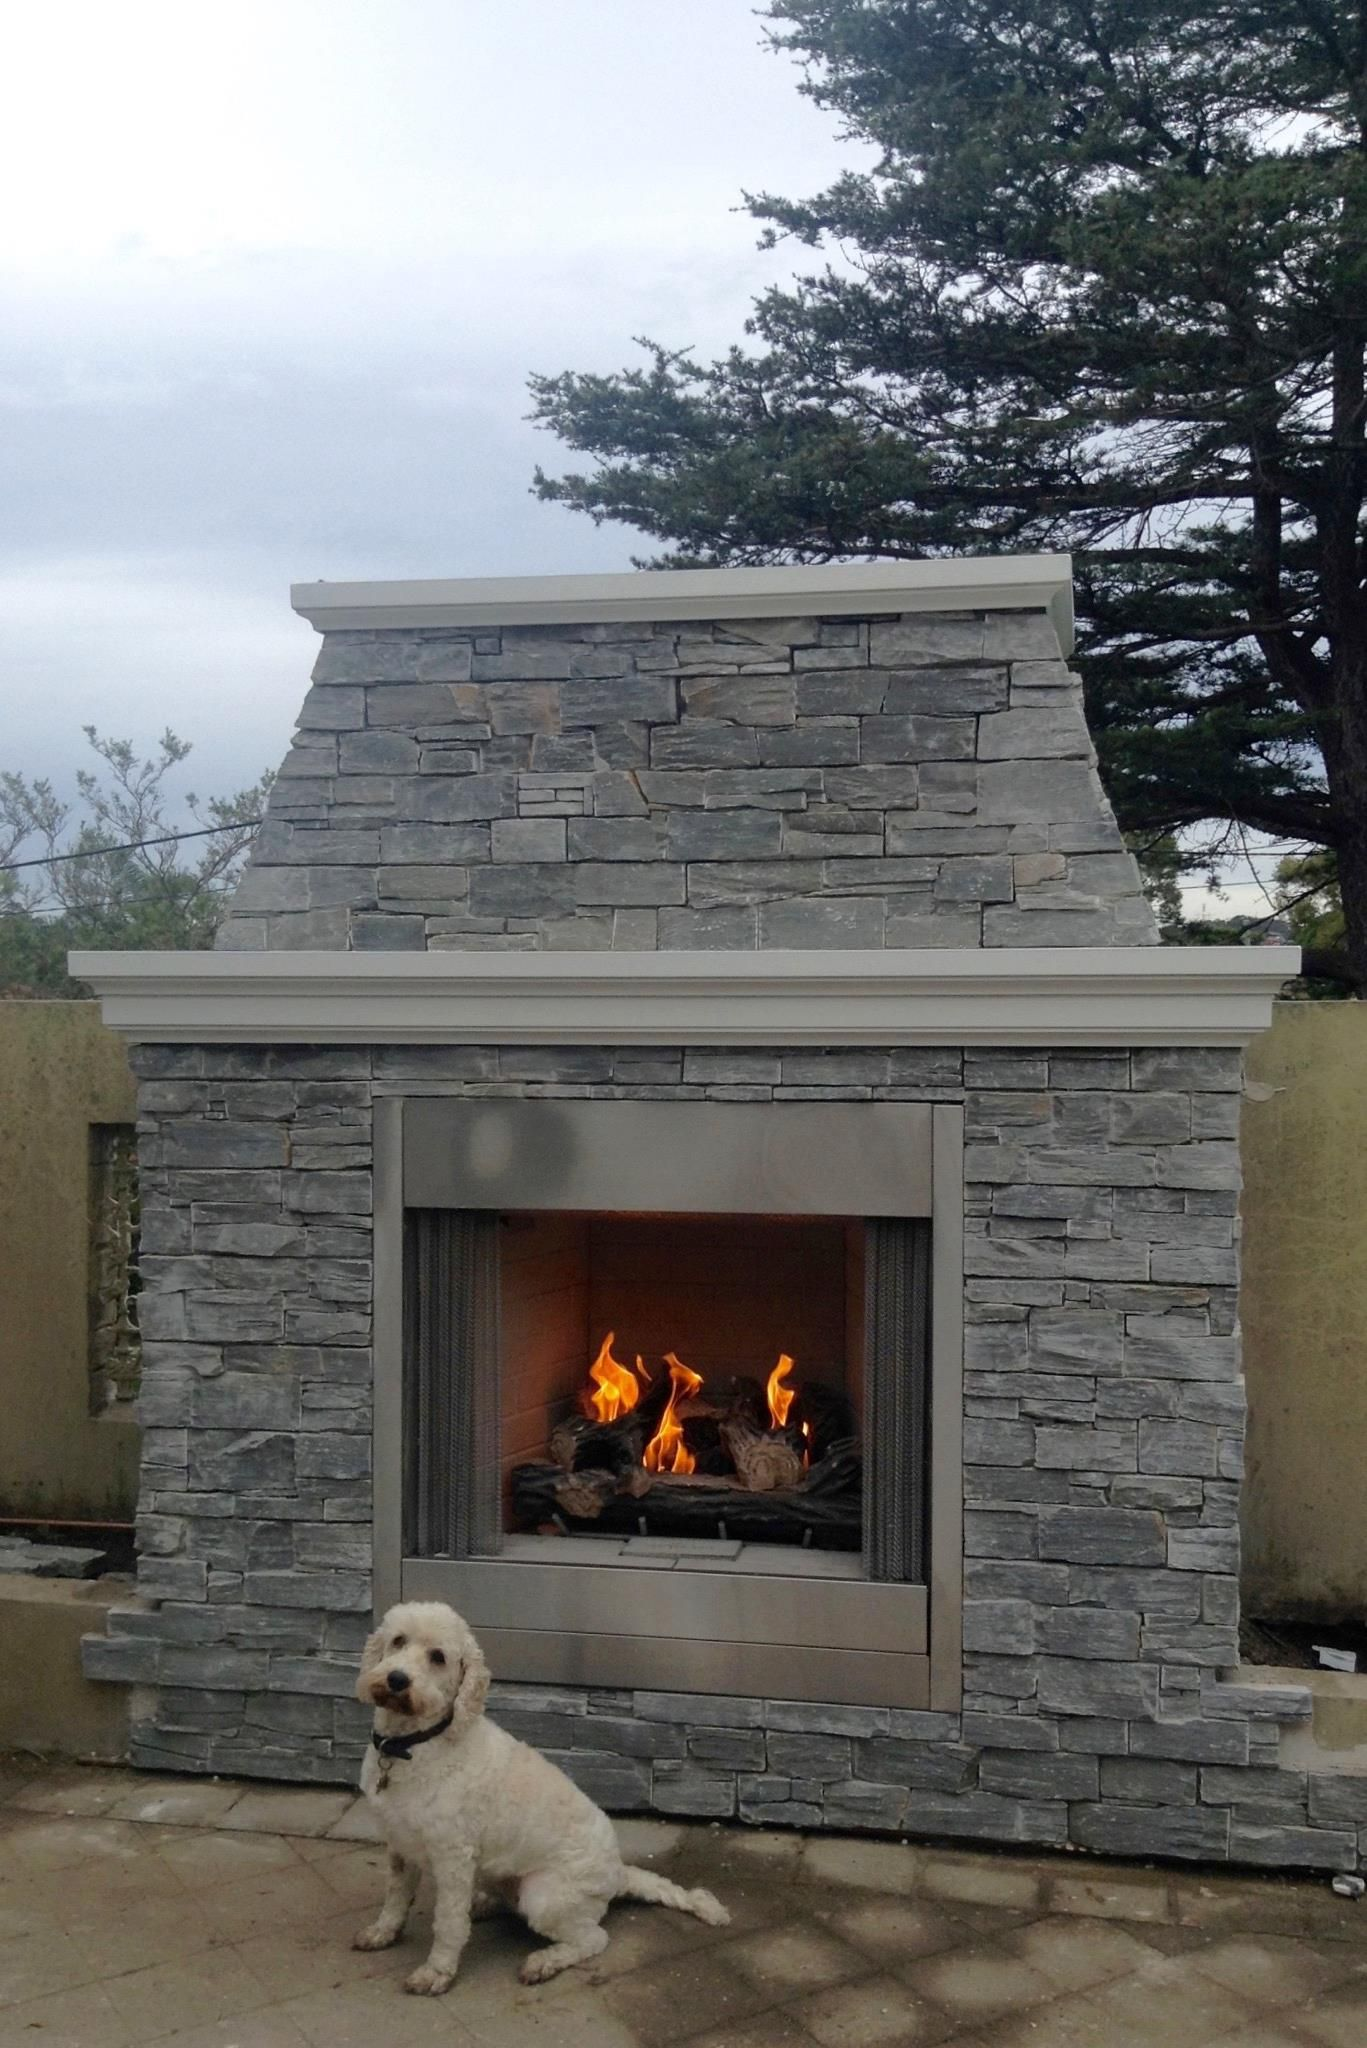 Stage 1 Of Our Outdoor Entertaining Area The Outdoor Fireplace Grey Stacked Stone Majestic Gas Outdoor Gas Fireplace Outdoor Fireplace Grey Stone Fireplace